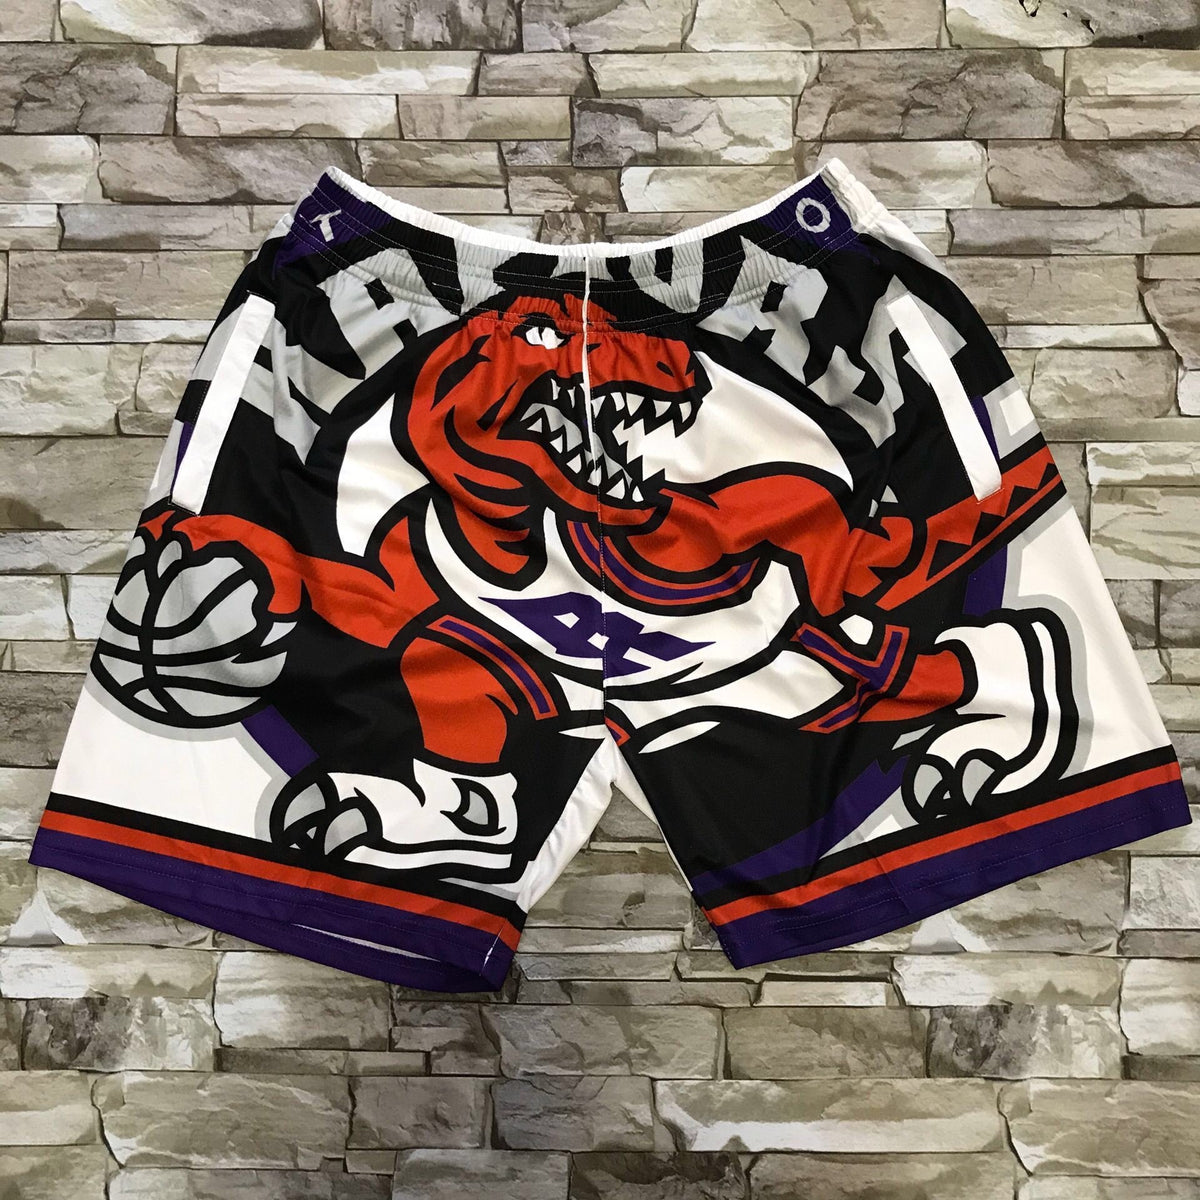 Throwback Raptors shorts